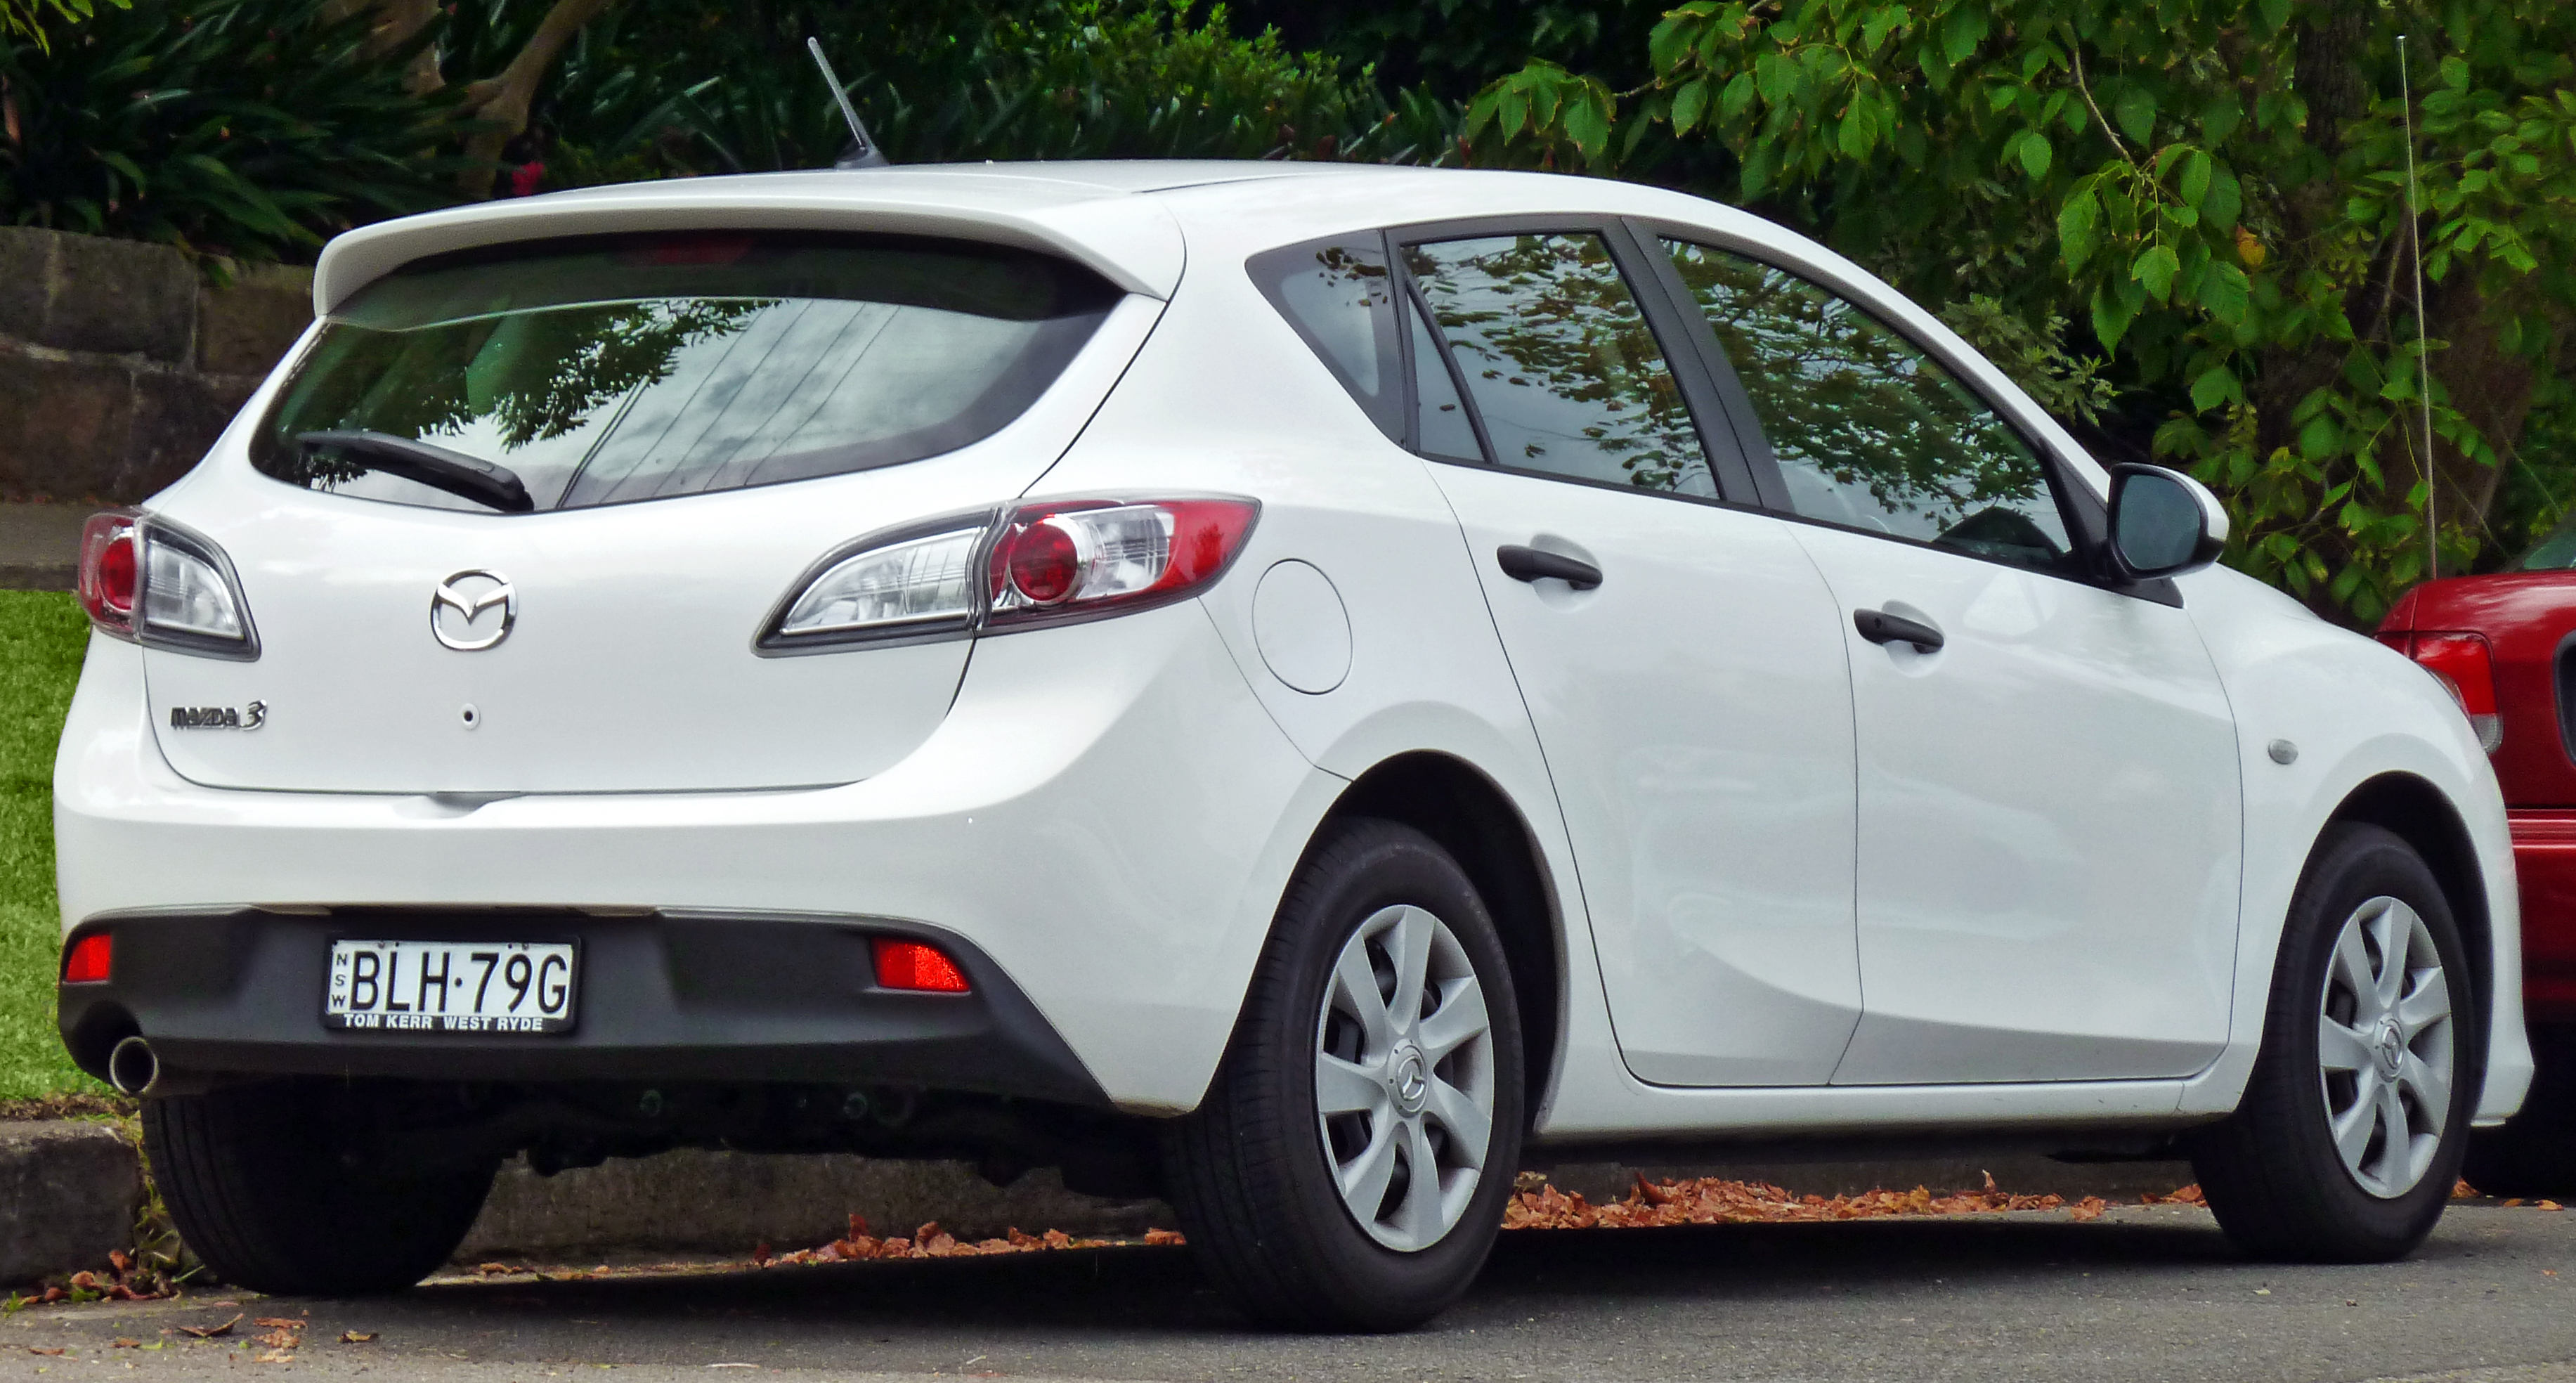 White Automatic Cars For Sale